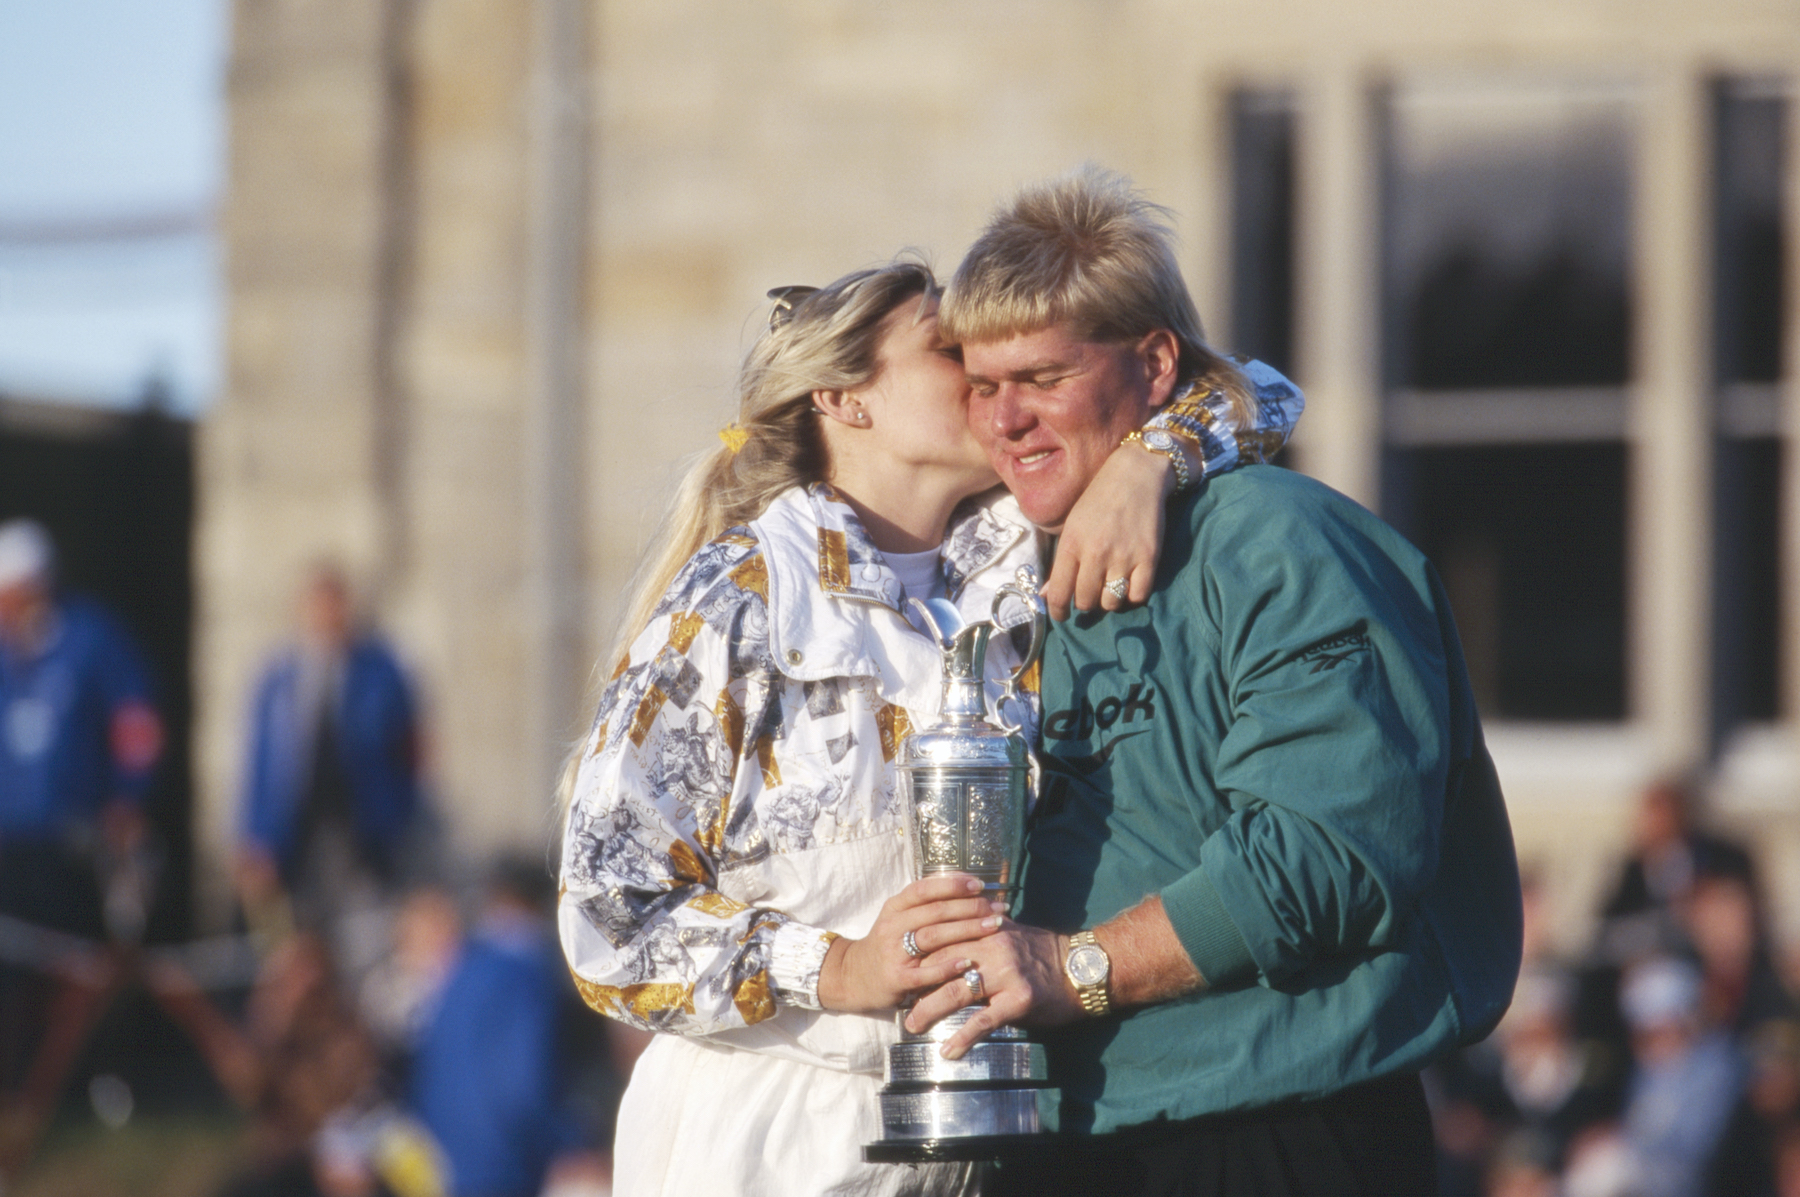 John Daly gets a kiss from his wife Paulette following his victory during the 1995 124th Open Championship